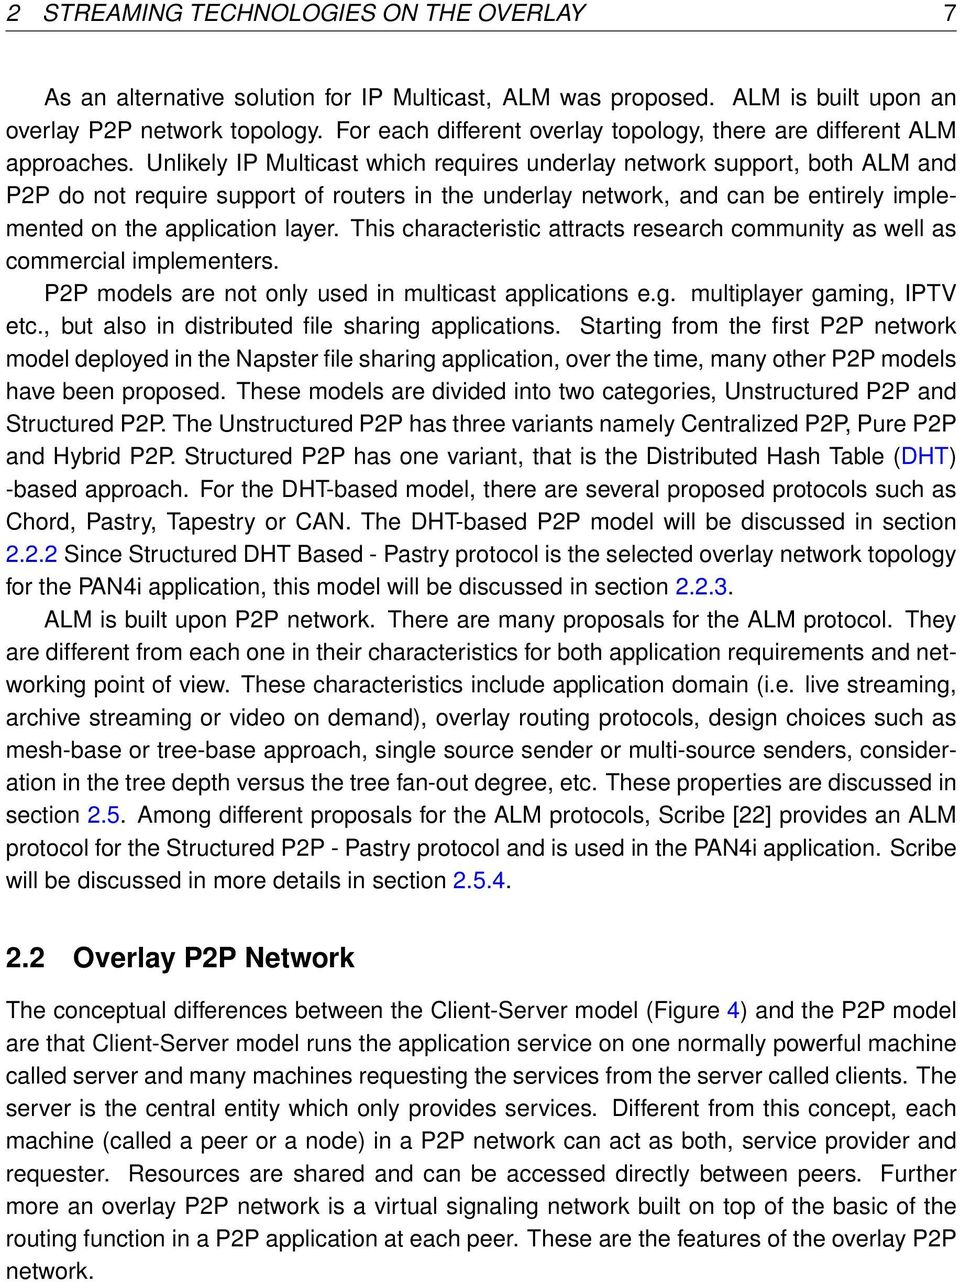 Unlikely IP Multicast which requires underlay network support, both ALM and P2P do not require support of routers in the underlay network, and can be entirely implemented on the application layer.